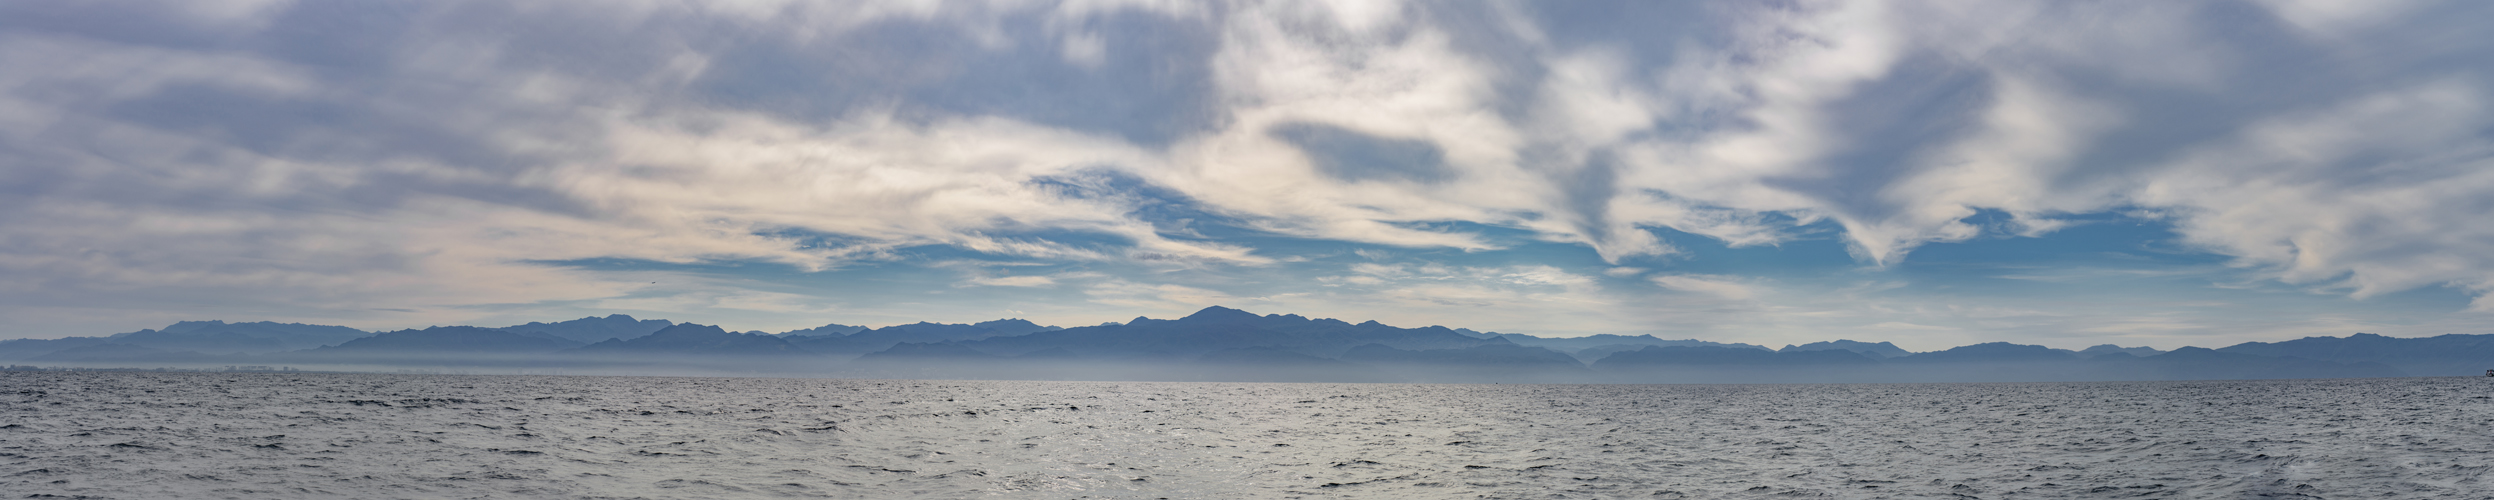 a panorama I stitched together of the low cloud cover on Banderas Bay